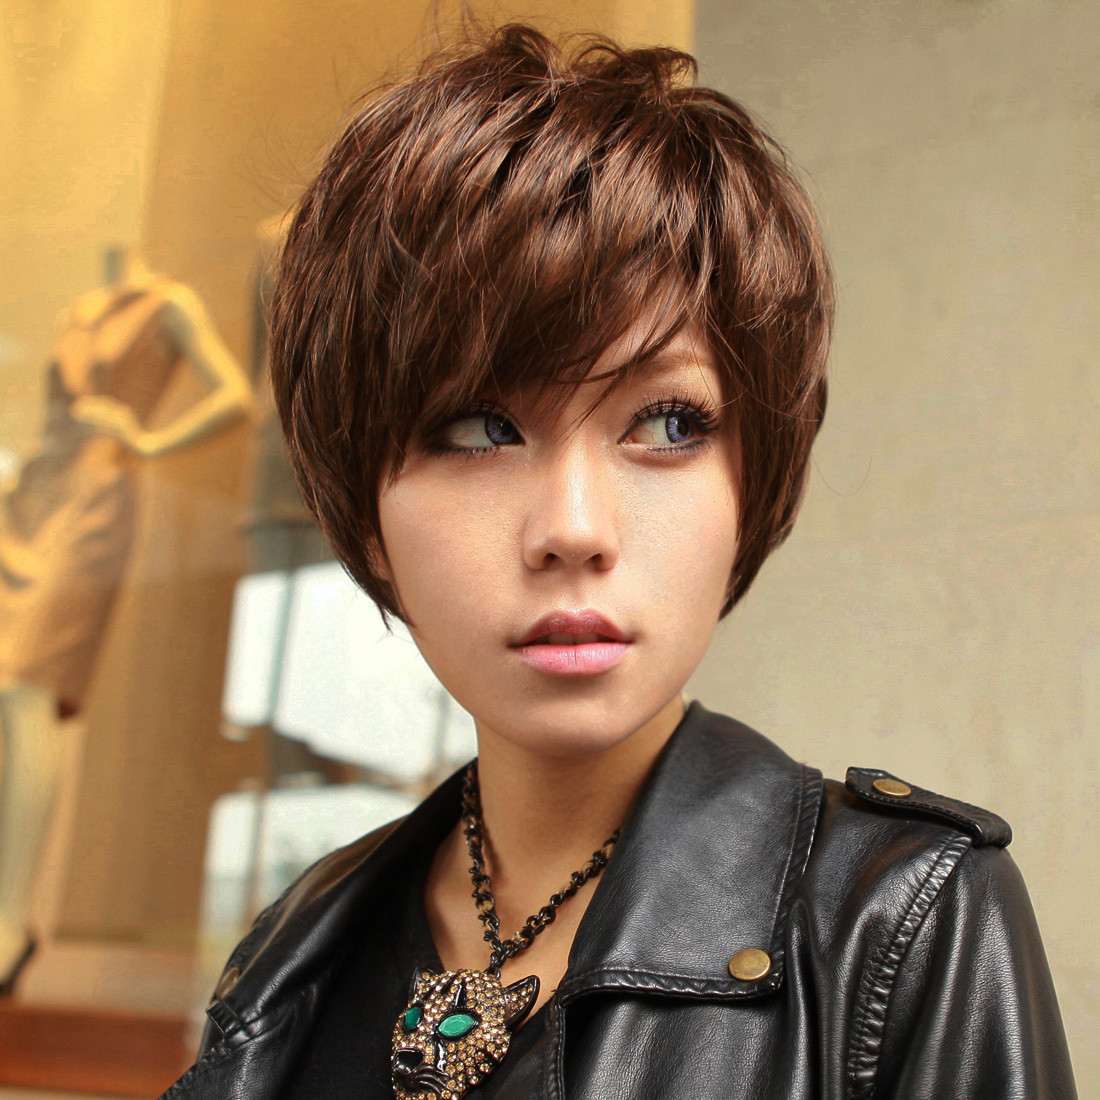 Best ideas about Anime Style Haircuts . Save or Pin anime style haircuts Haircuts Models Ideas Now.